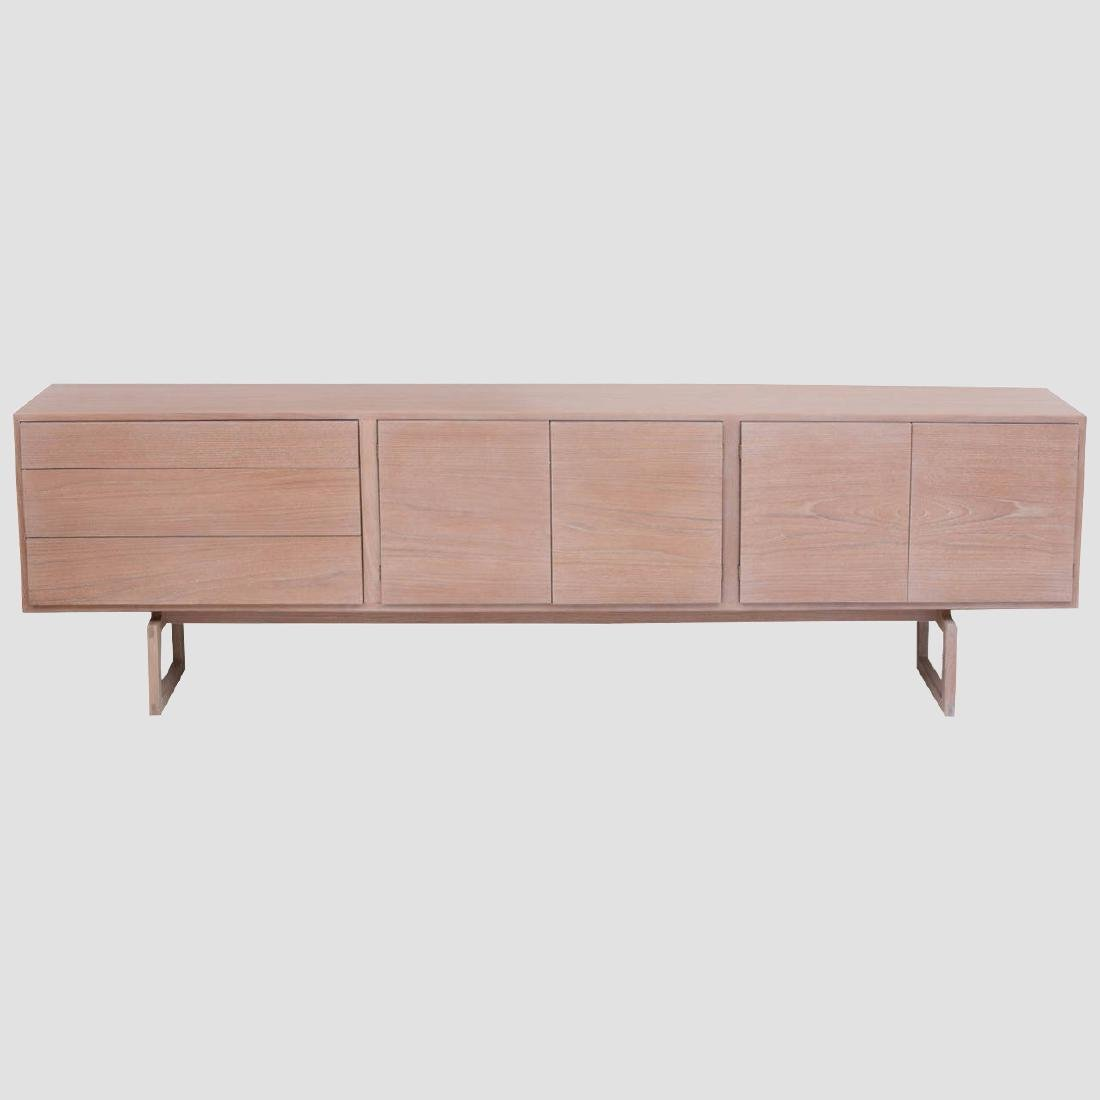 Arne Vodder Buffet in Bleached Teak